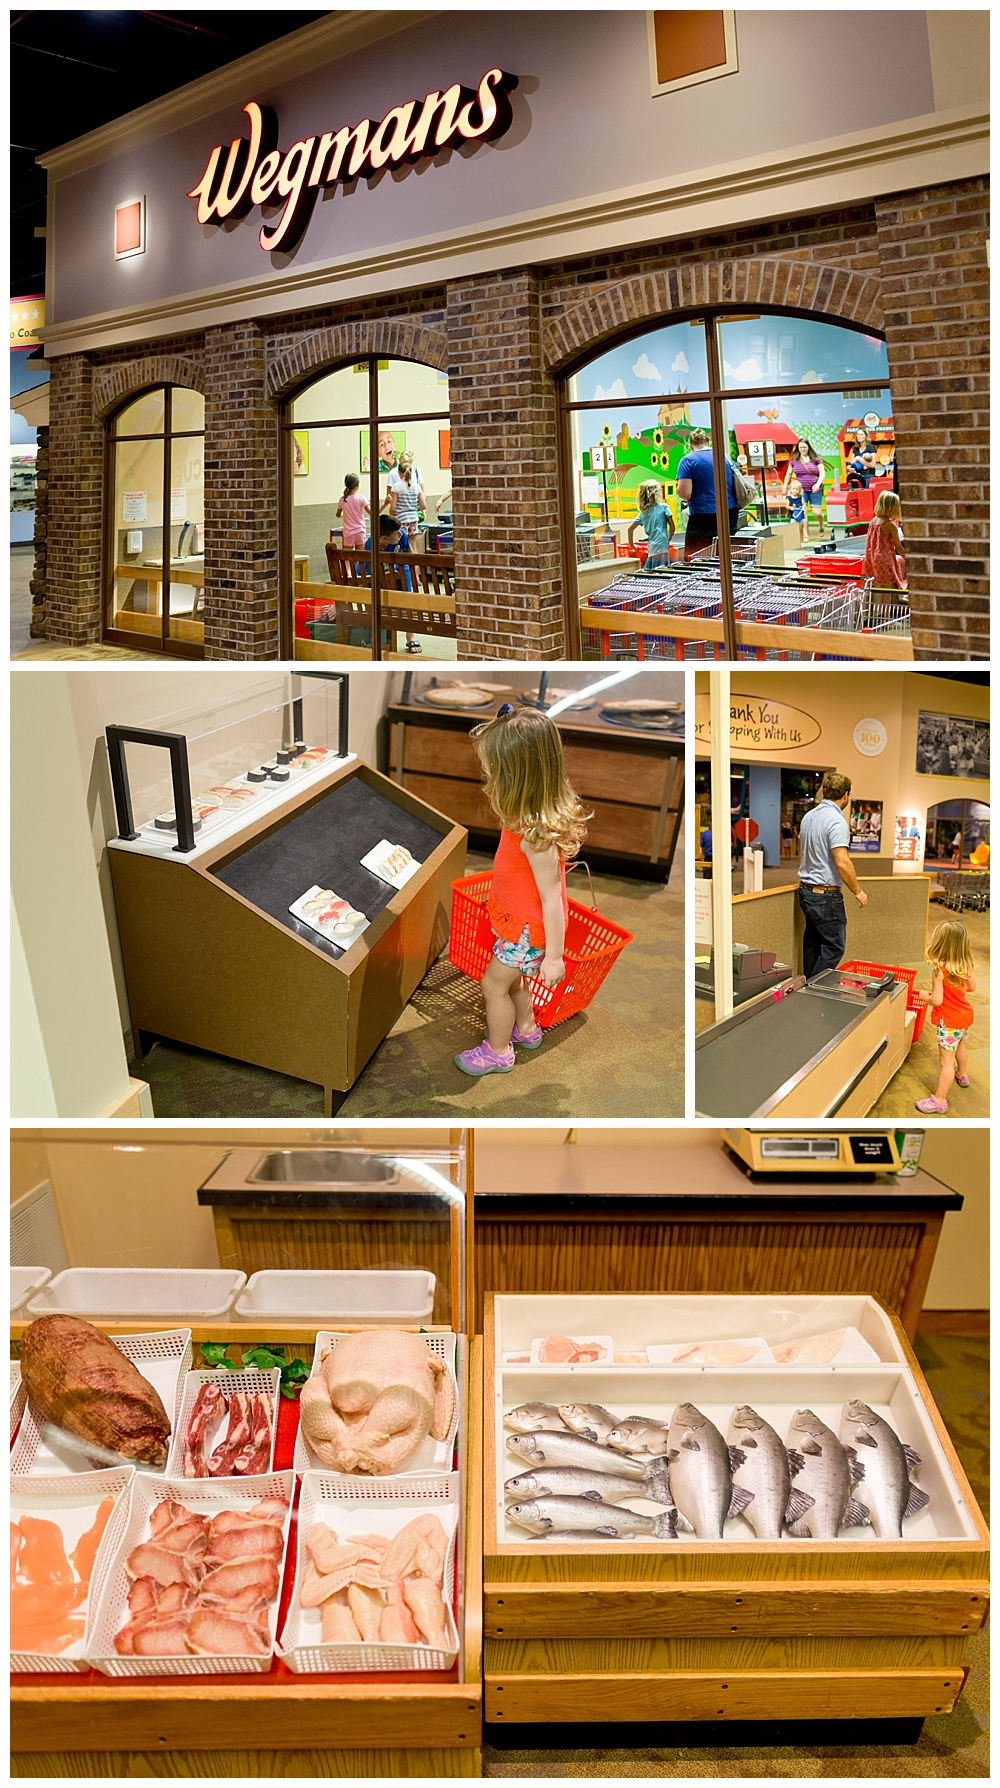 Wegman's grocery story exhibit at Strong National Museum of Play